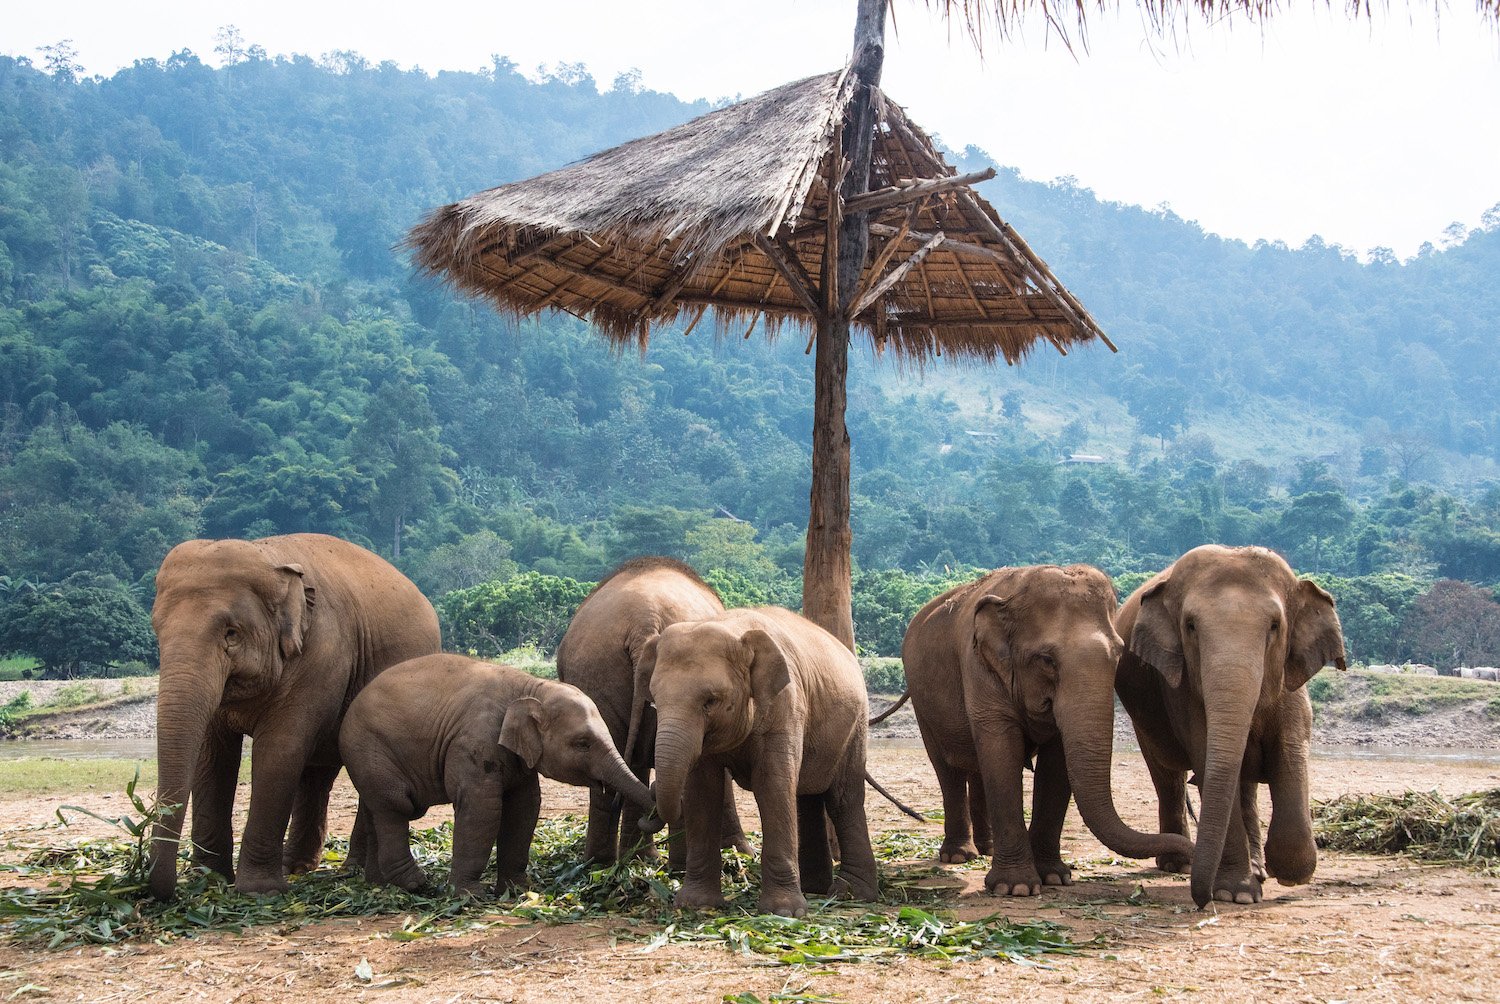 Chiang Mai elephants in Thailand